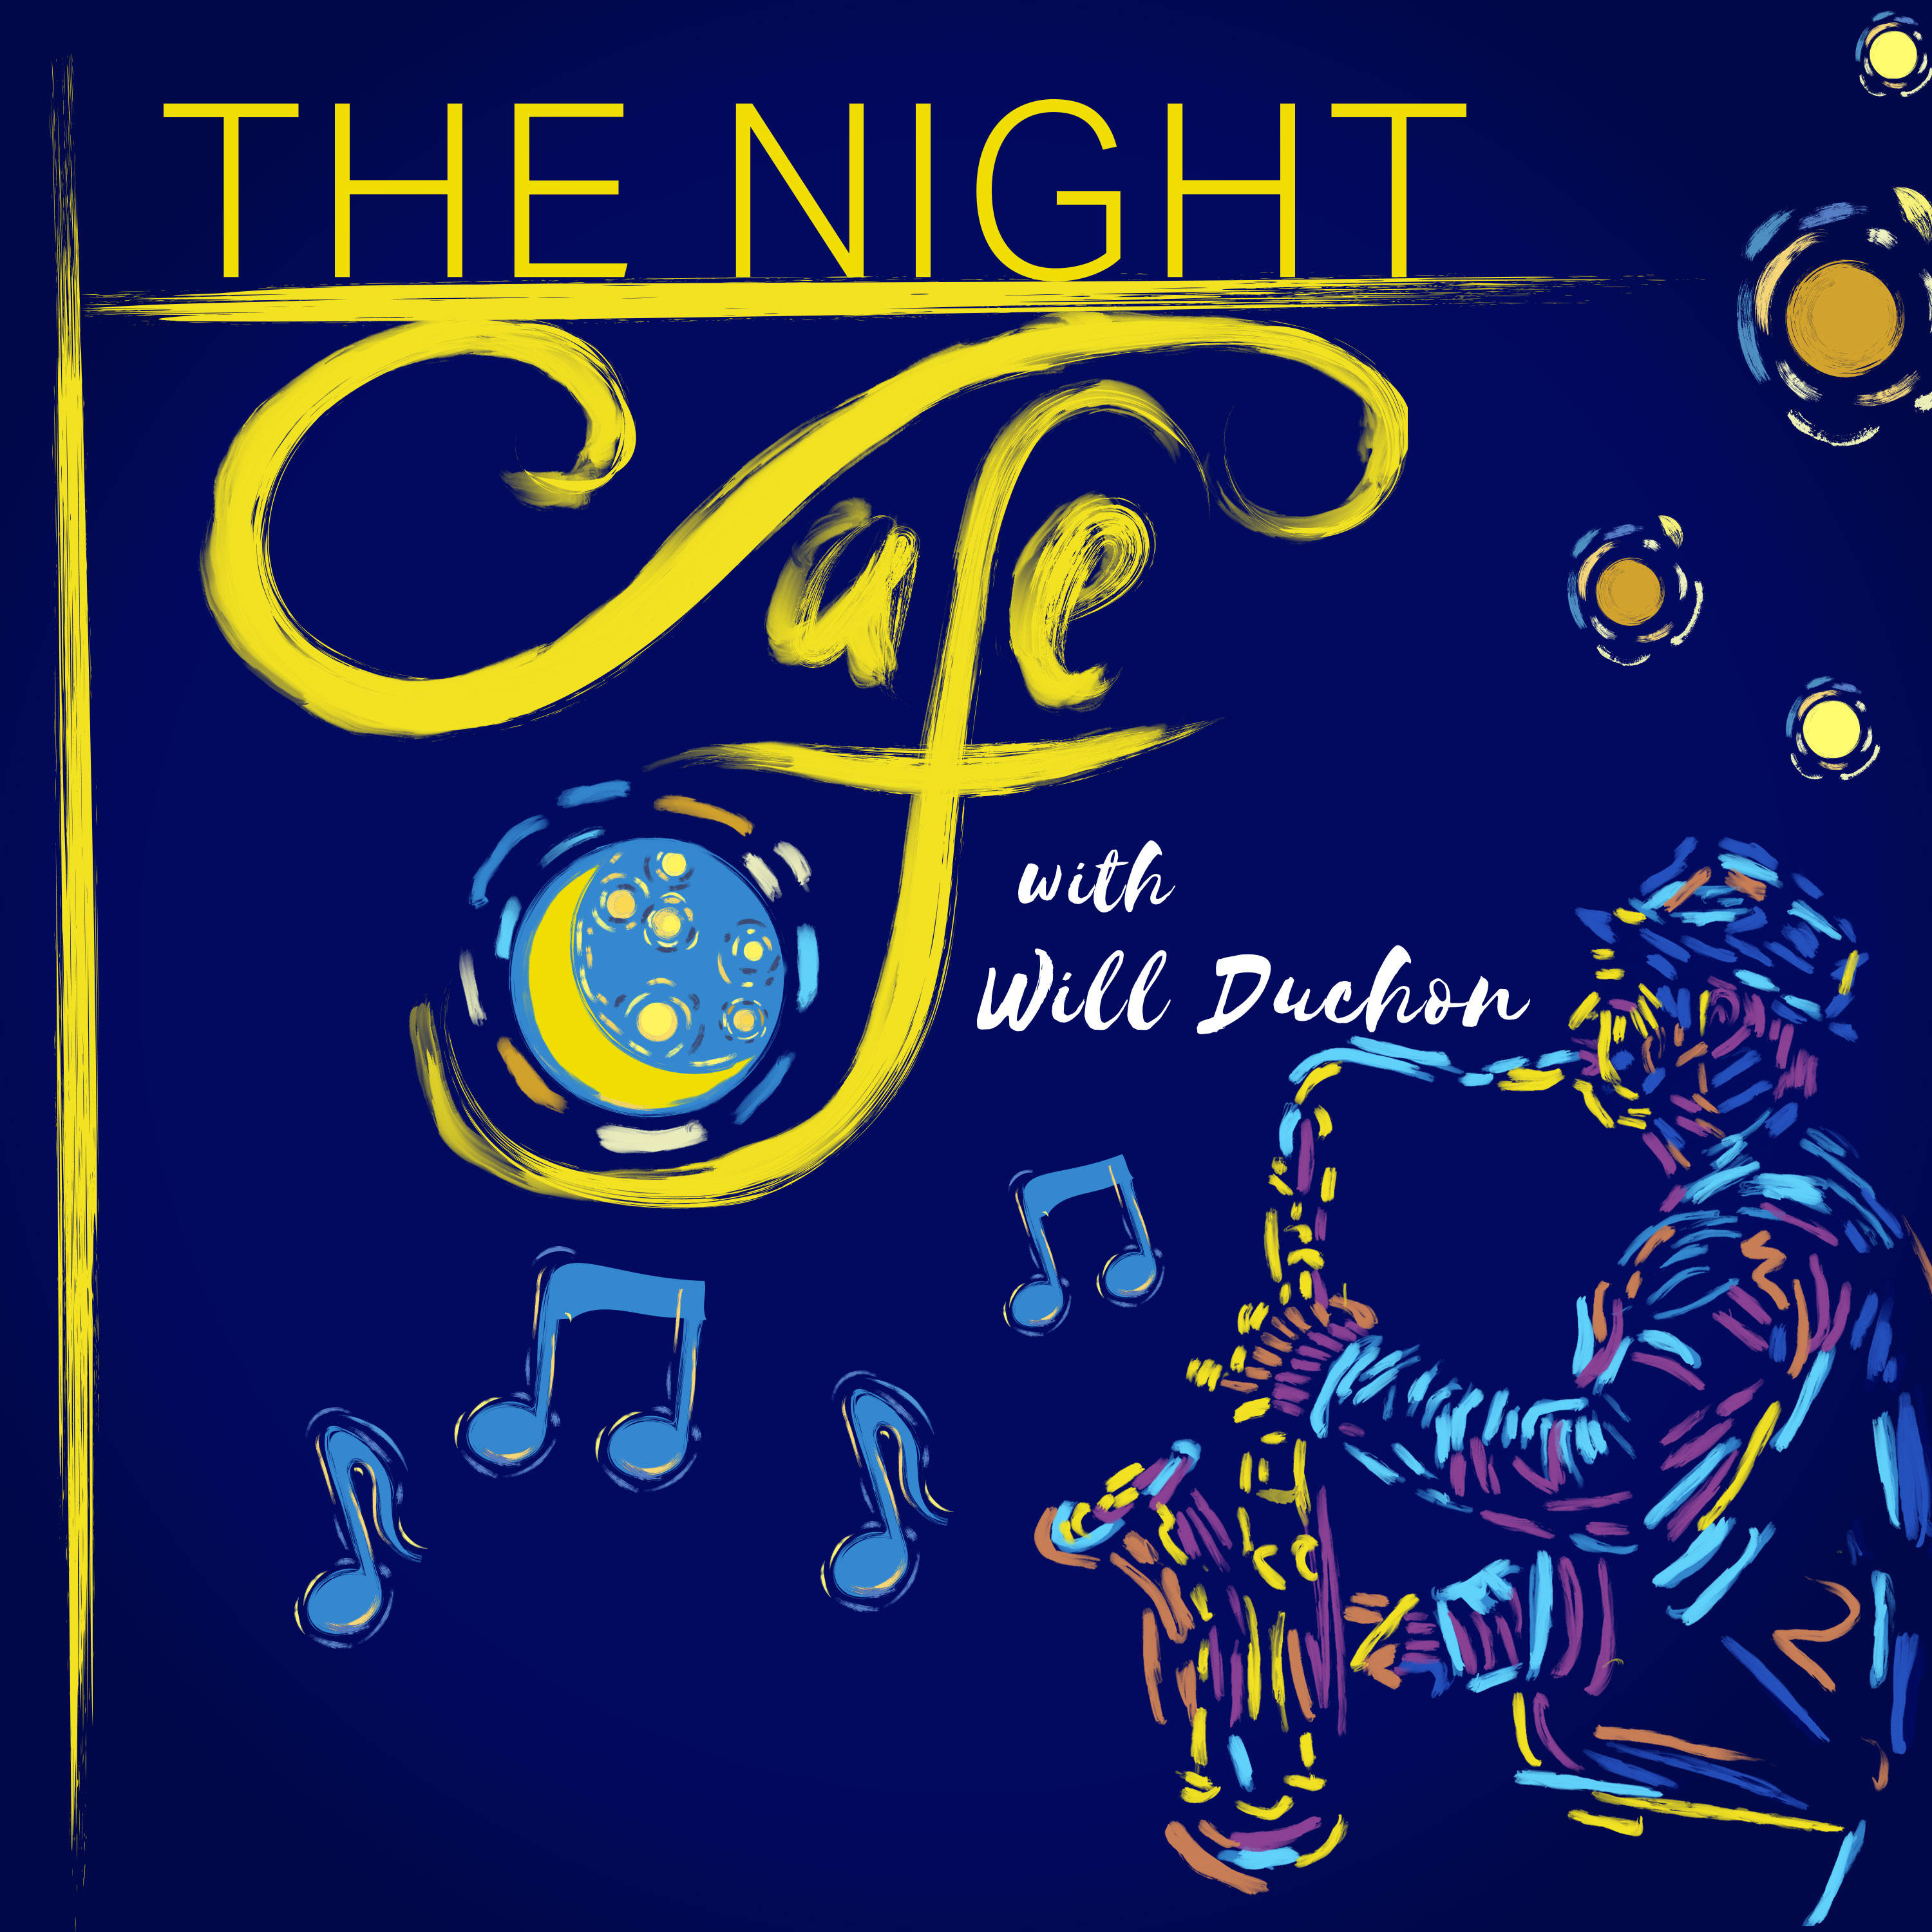 The-night-cafe-cover-art_small